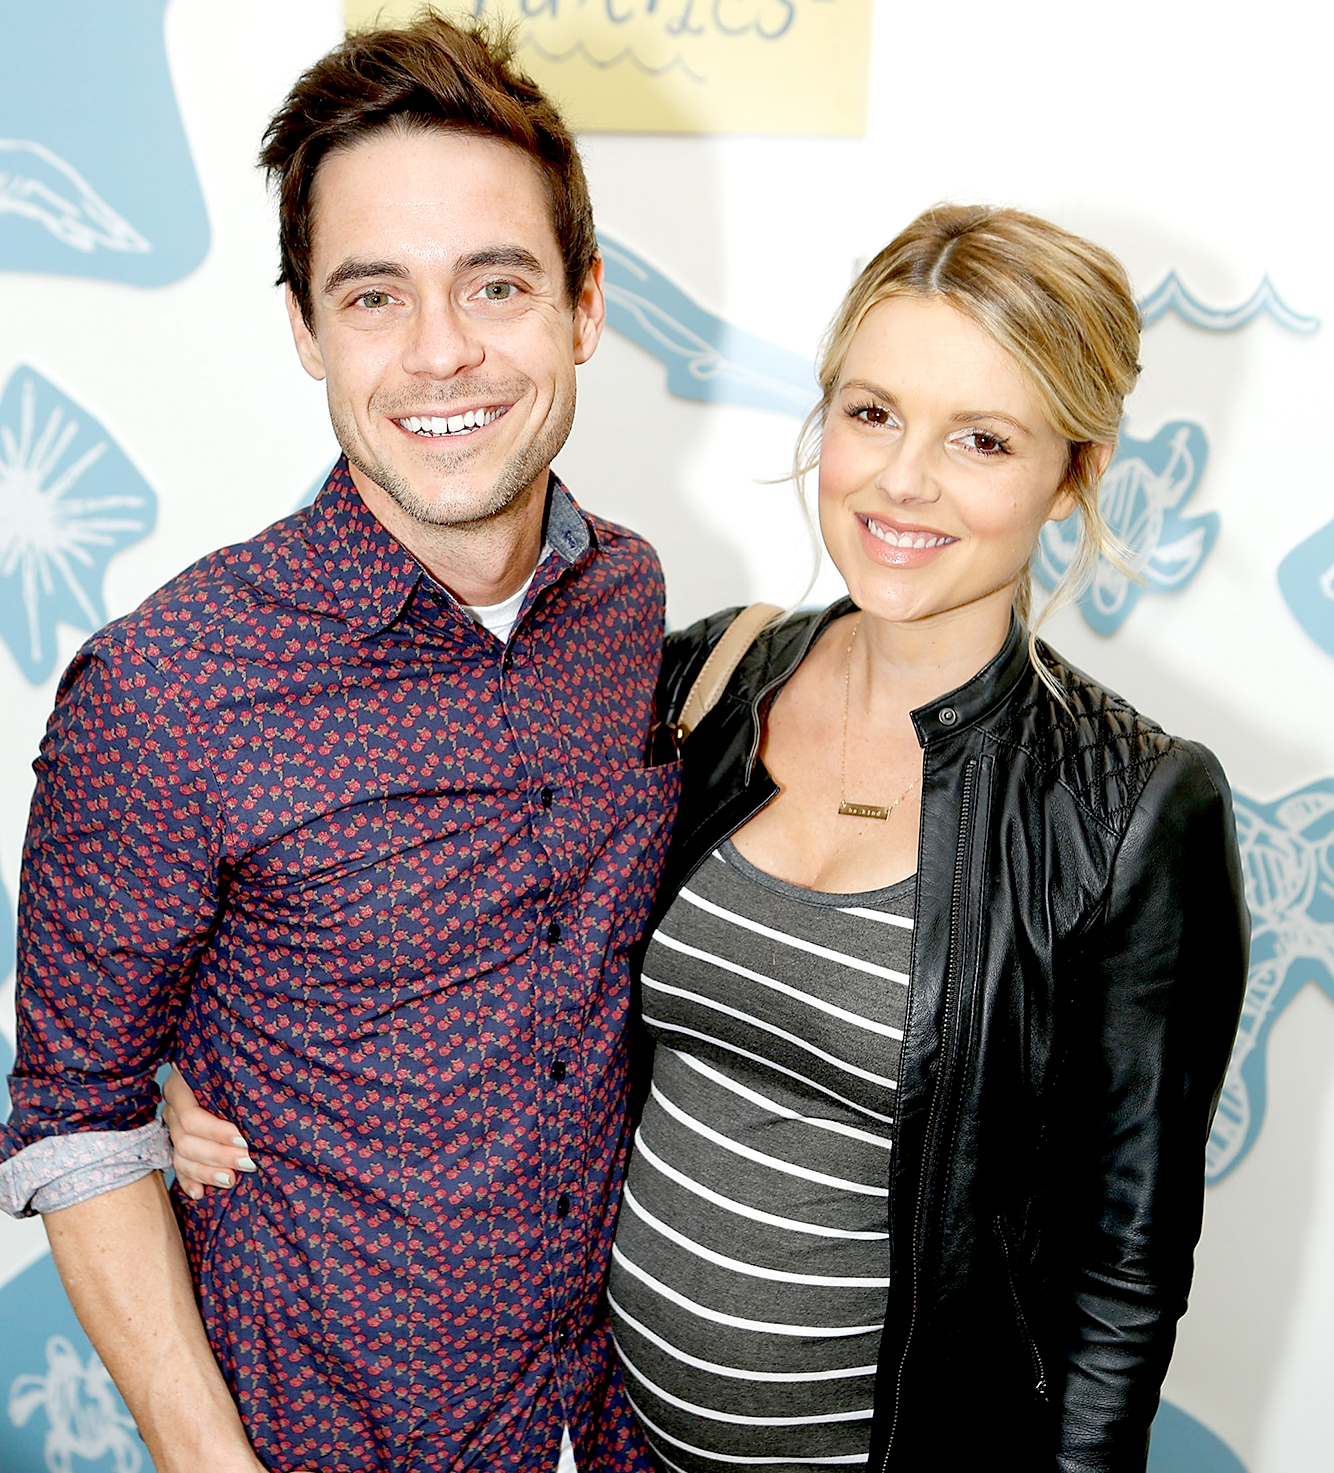 Kevin Manno and Ali Fedotowsky attend the partnership celebration between TOMS and Oceana to help save the sea turtles on March 24, 2016 at Au Fudge in West Hollywood, California.